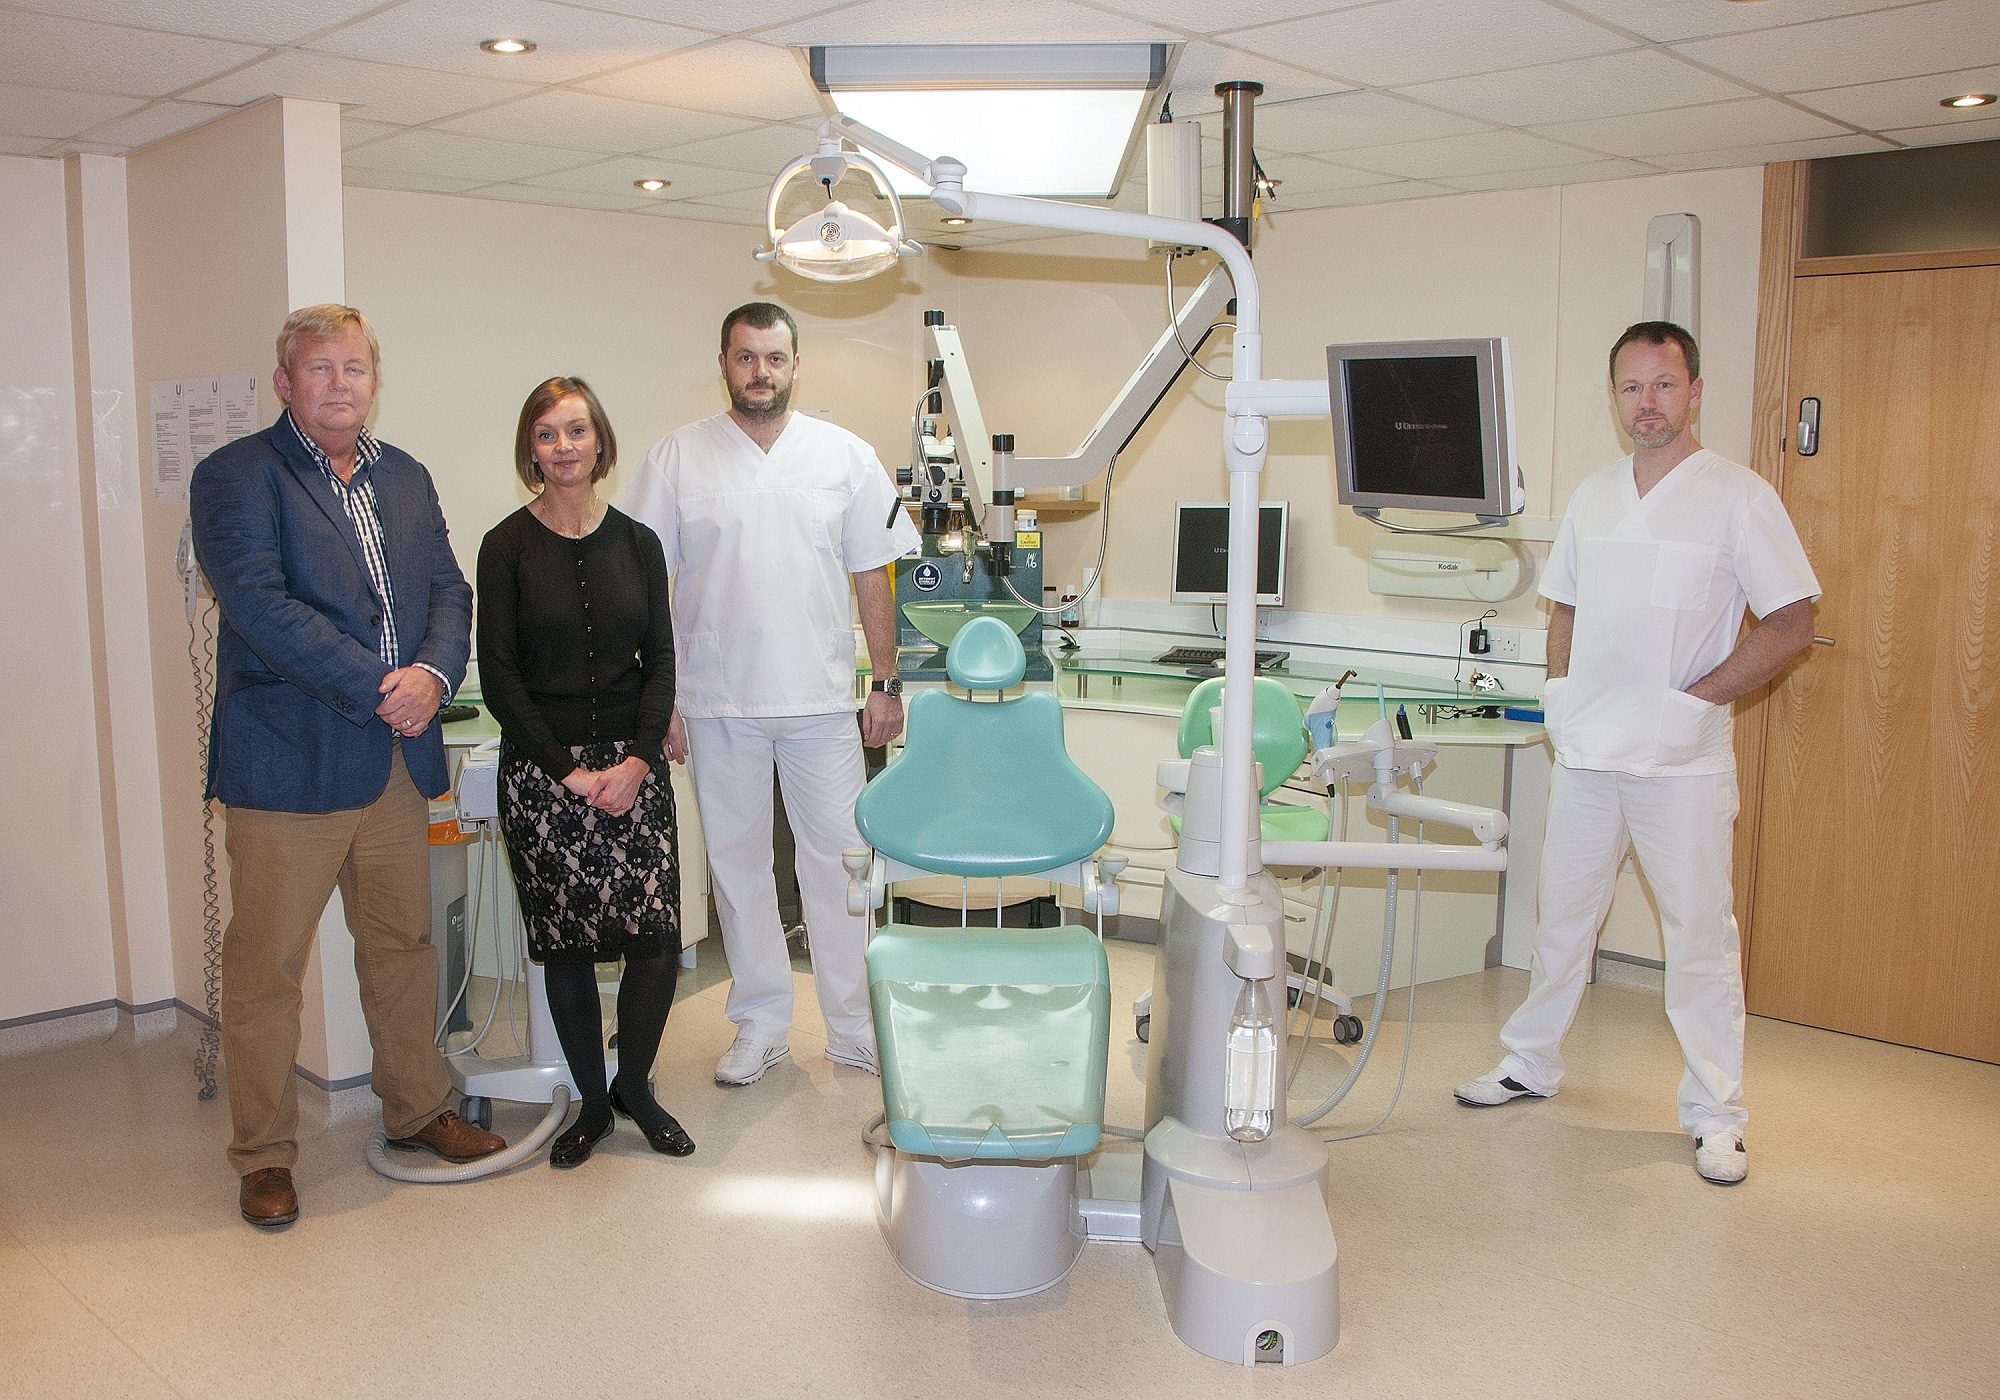 At U Dentistry are (from left) Steve Midgley of Lloyds Bank Commercial Banking, Jill Dean, Alyn Morgan and Martin Harris